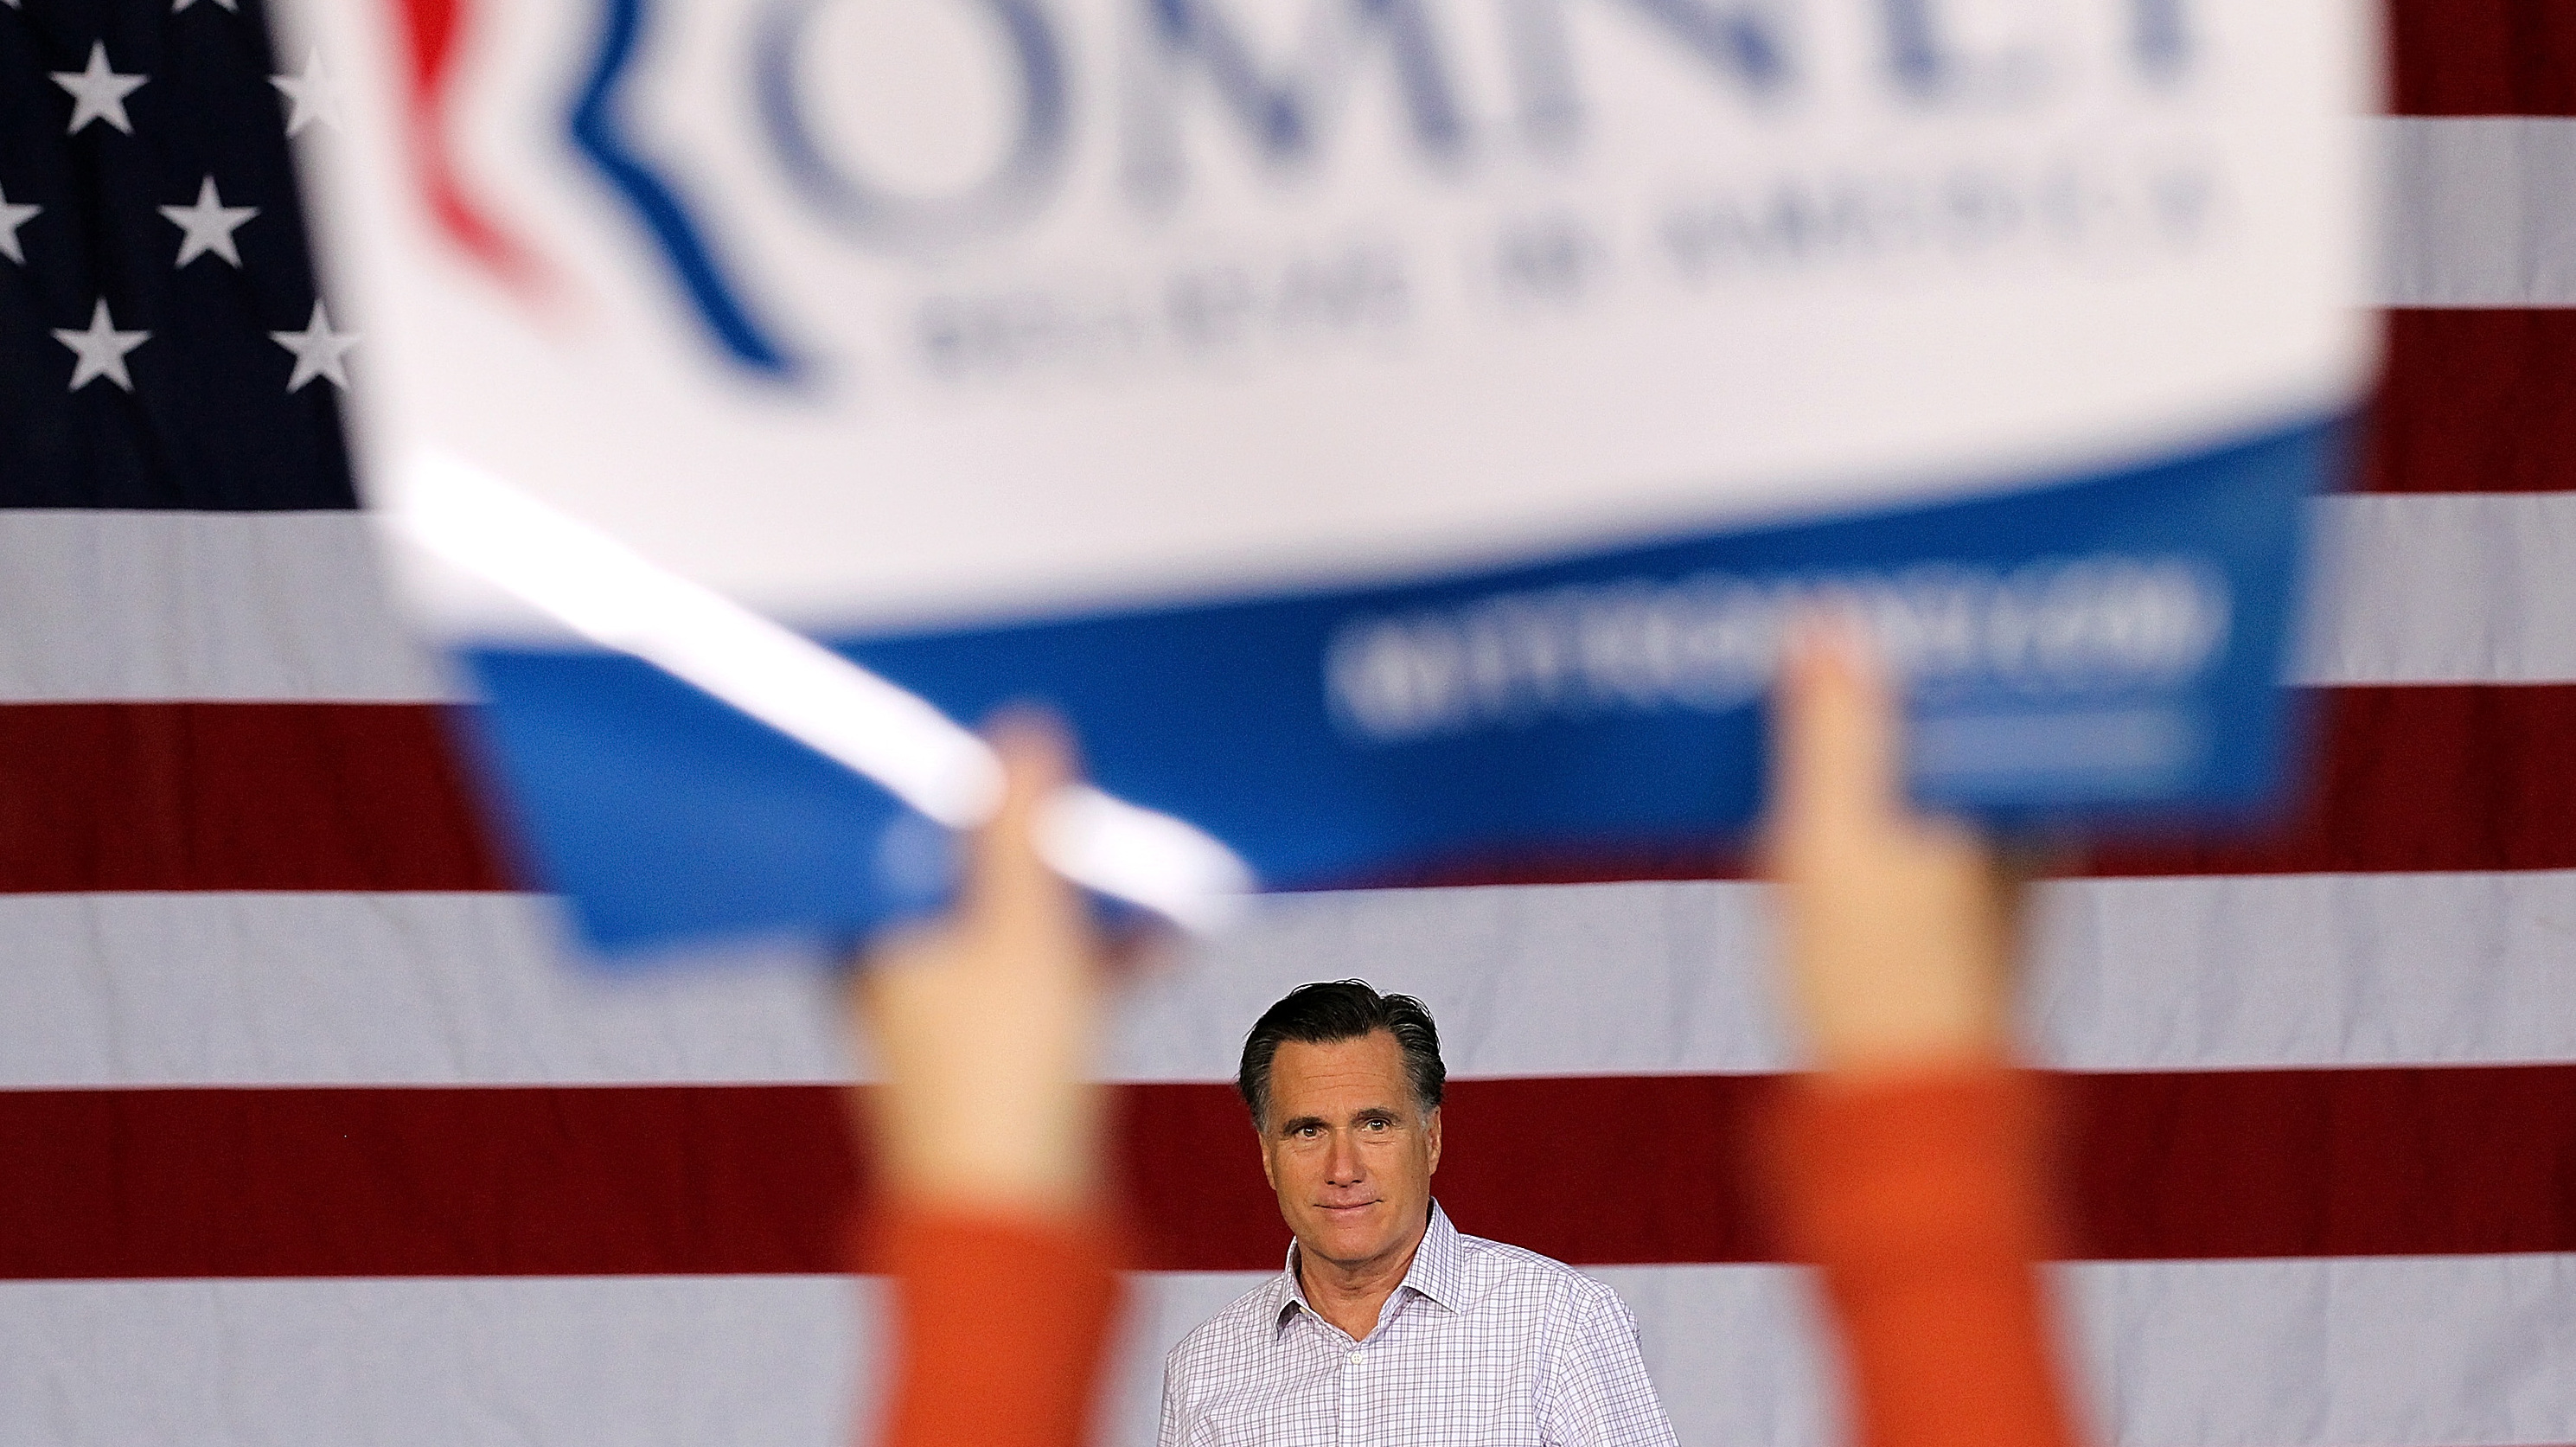 Republicans to Romney: Fix your message